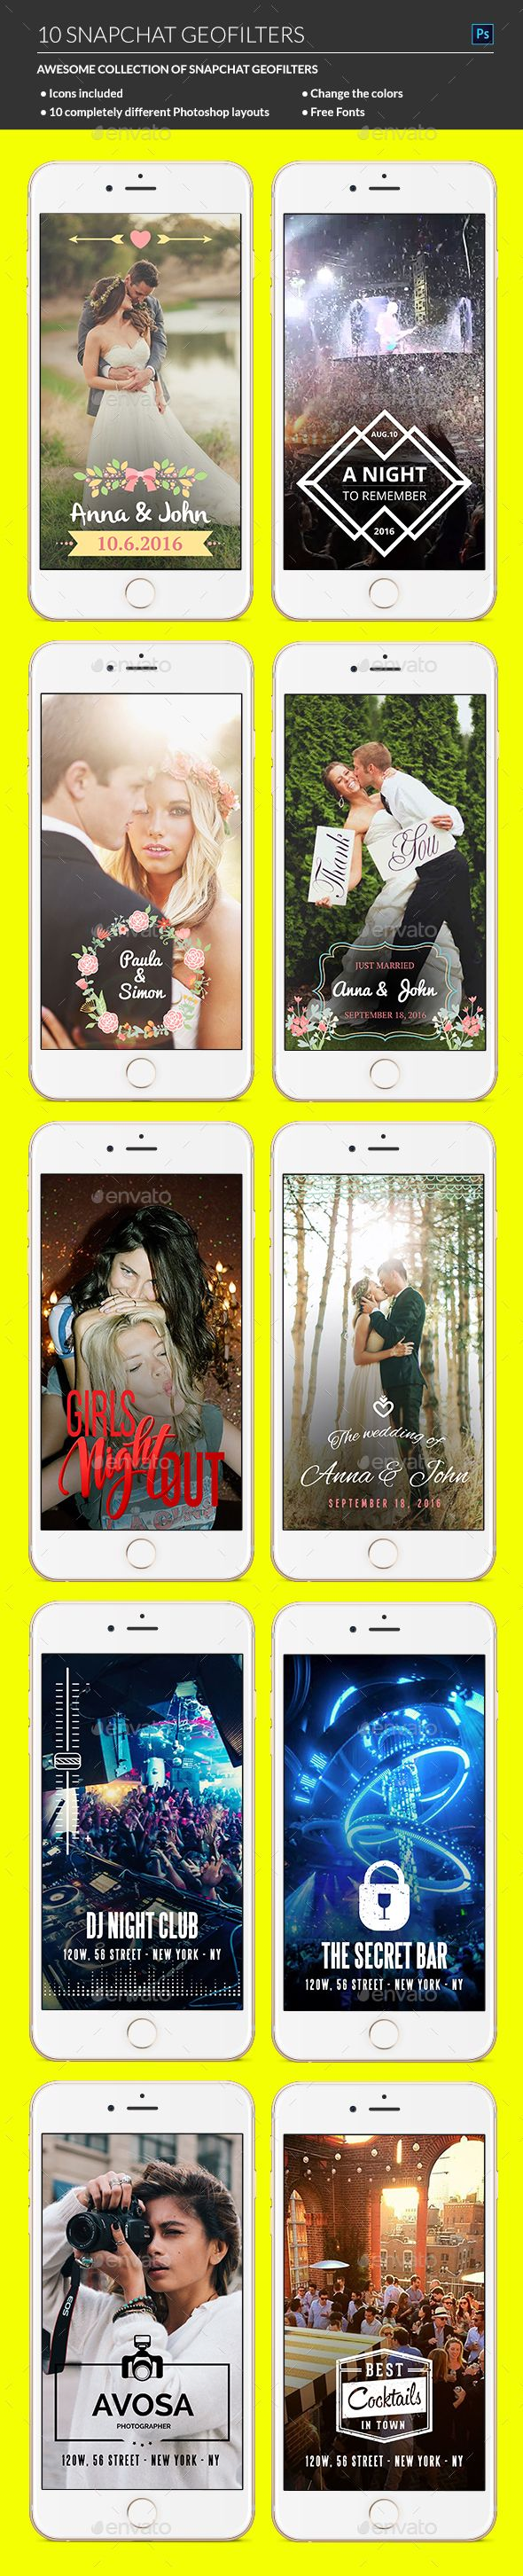 snapchat geofilters pinterest psd templates snapchat and template. Black Bedroom Furniture Sets. Home Design Ideas